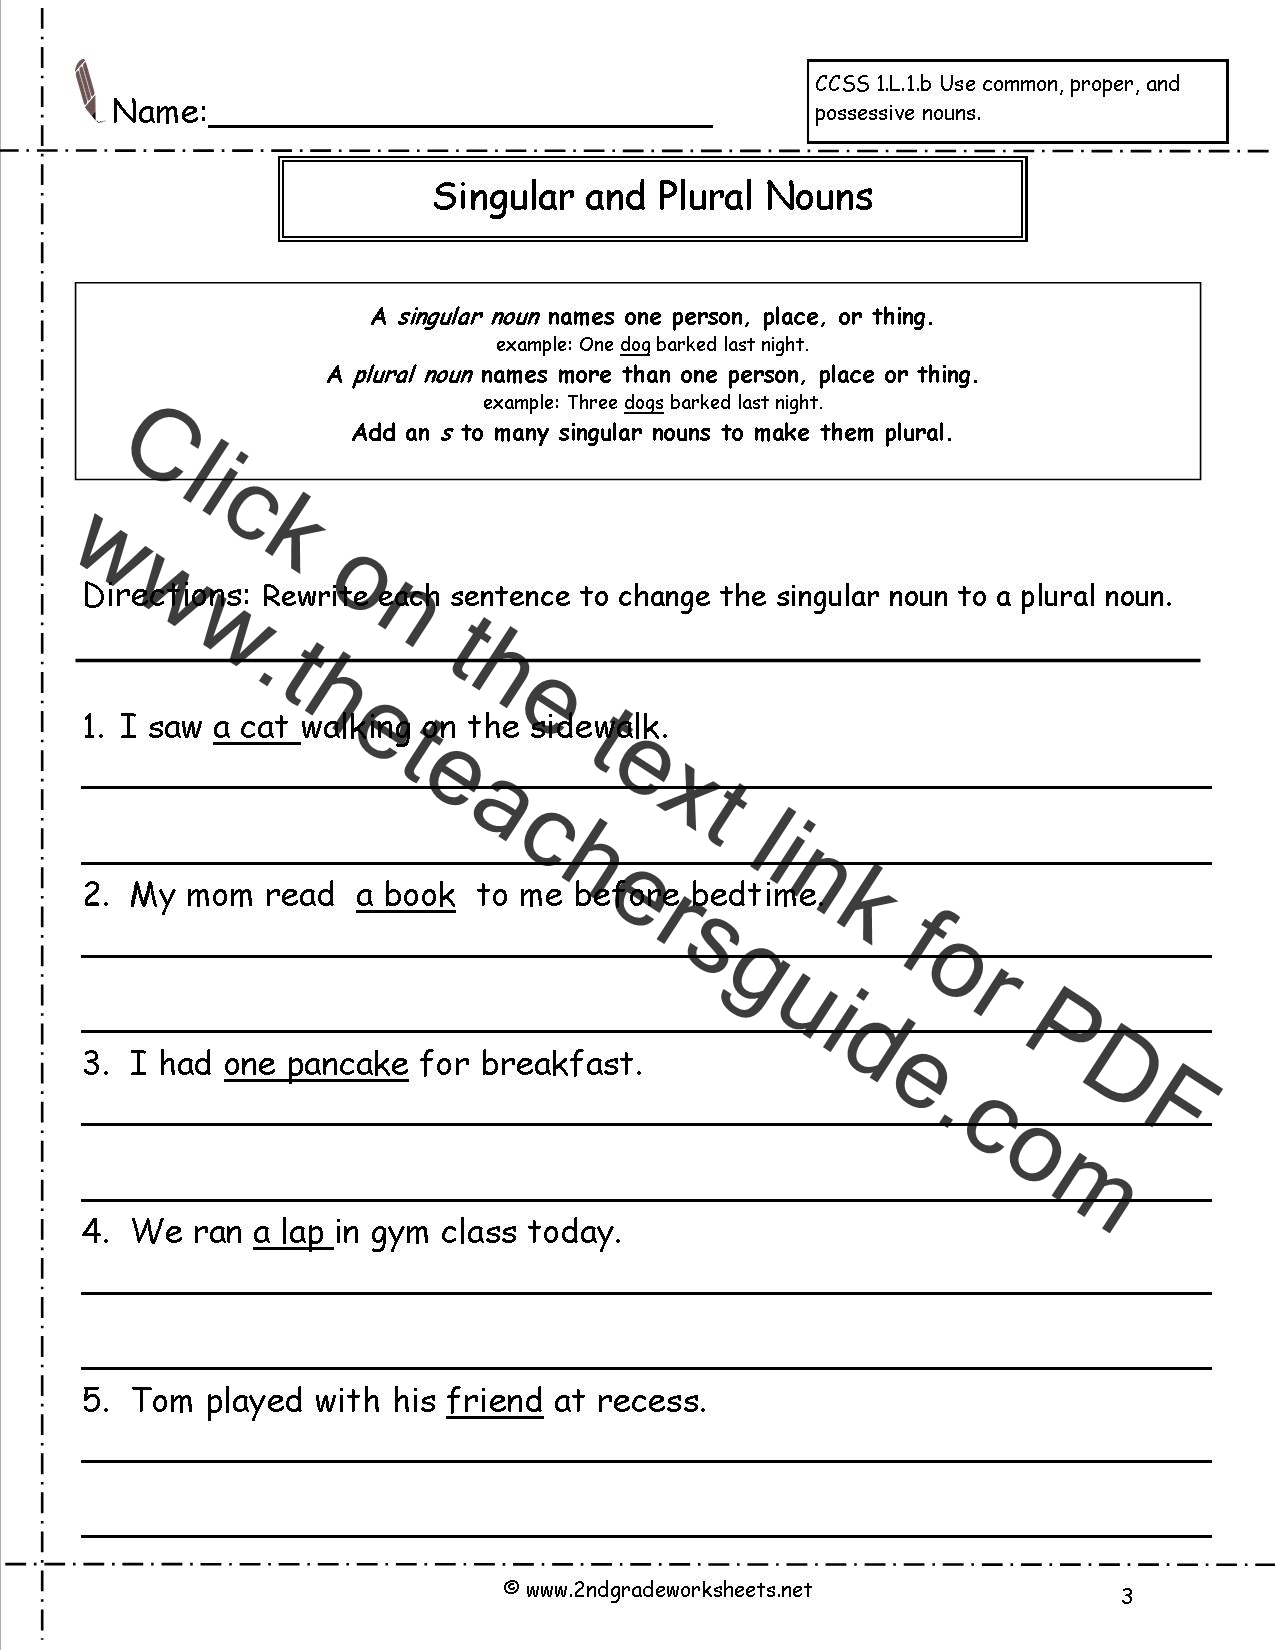 Worksheet Free Plural Noun Worksheets singular and plural nouns worksheets worksheet